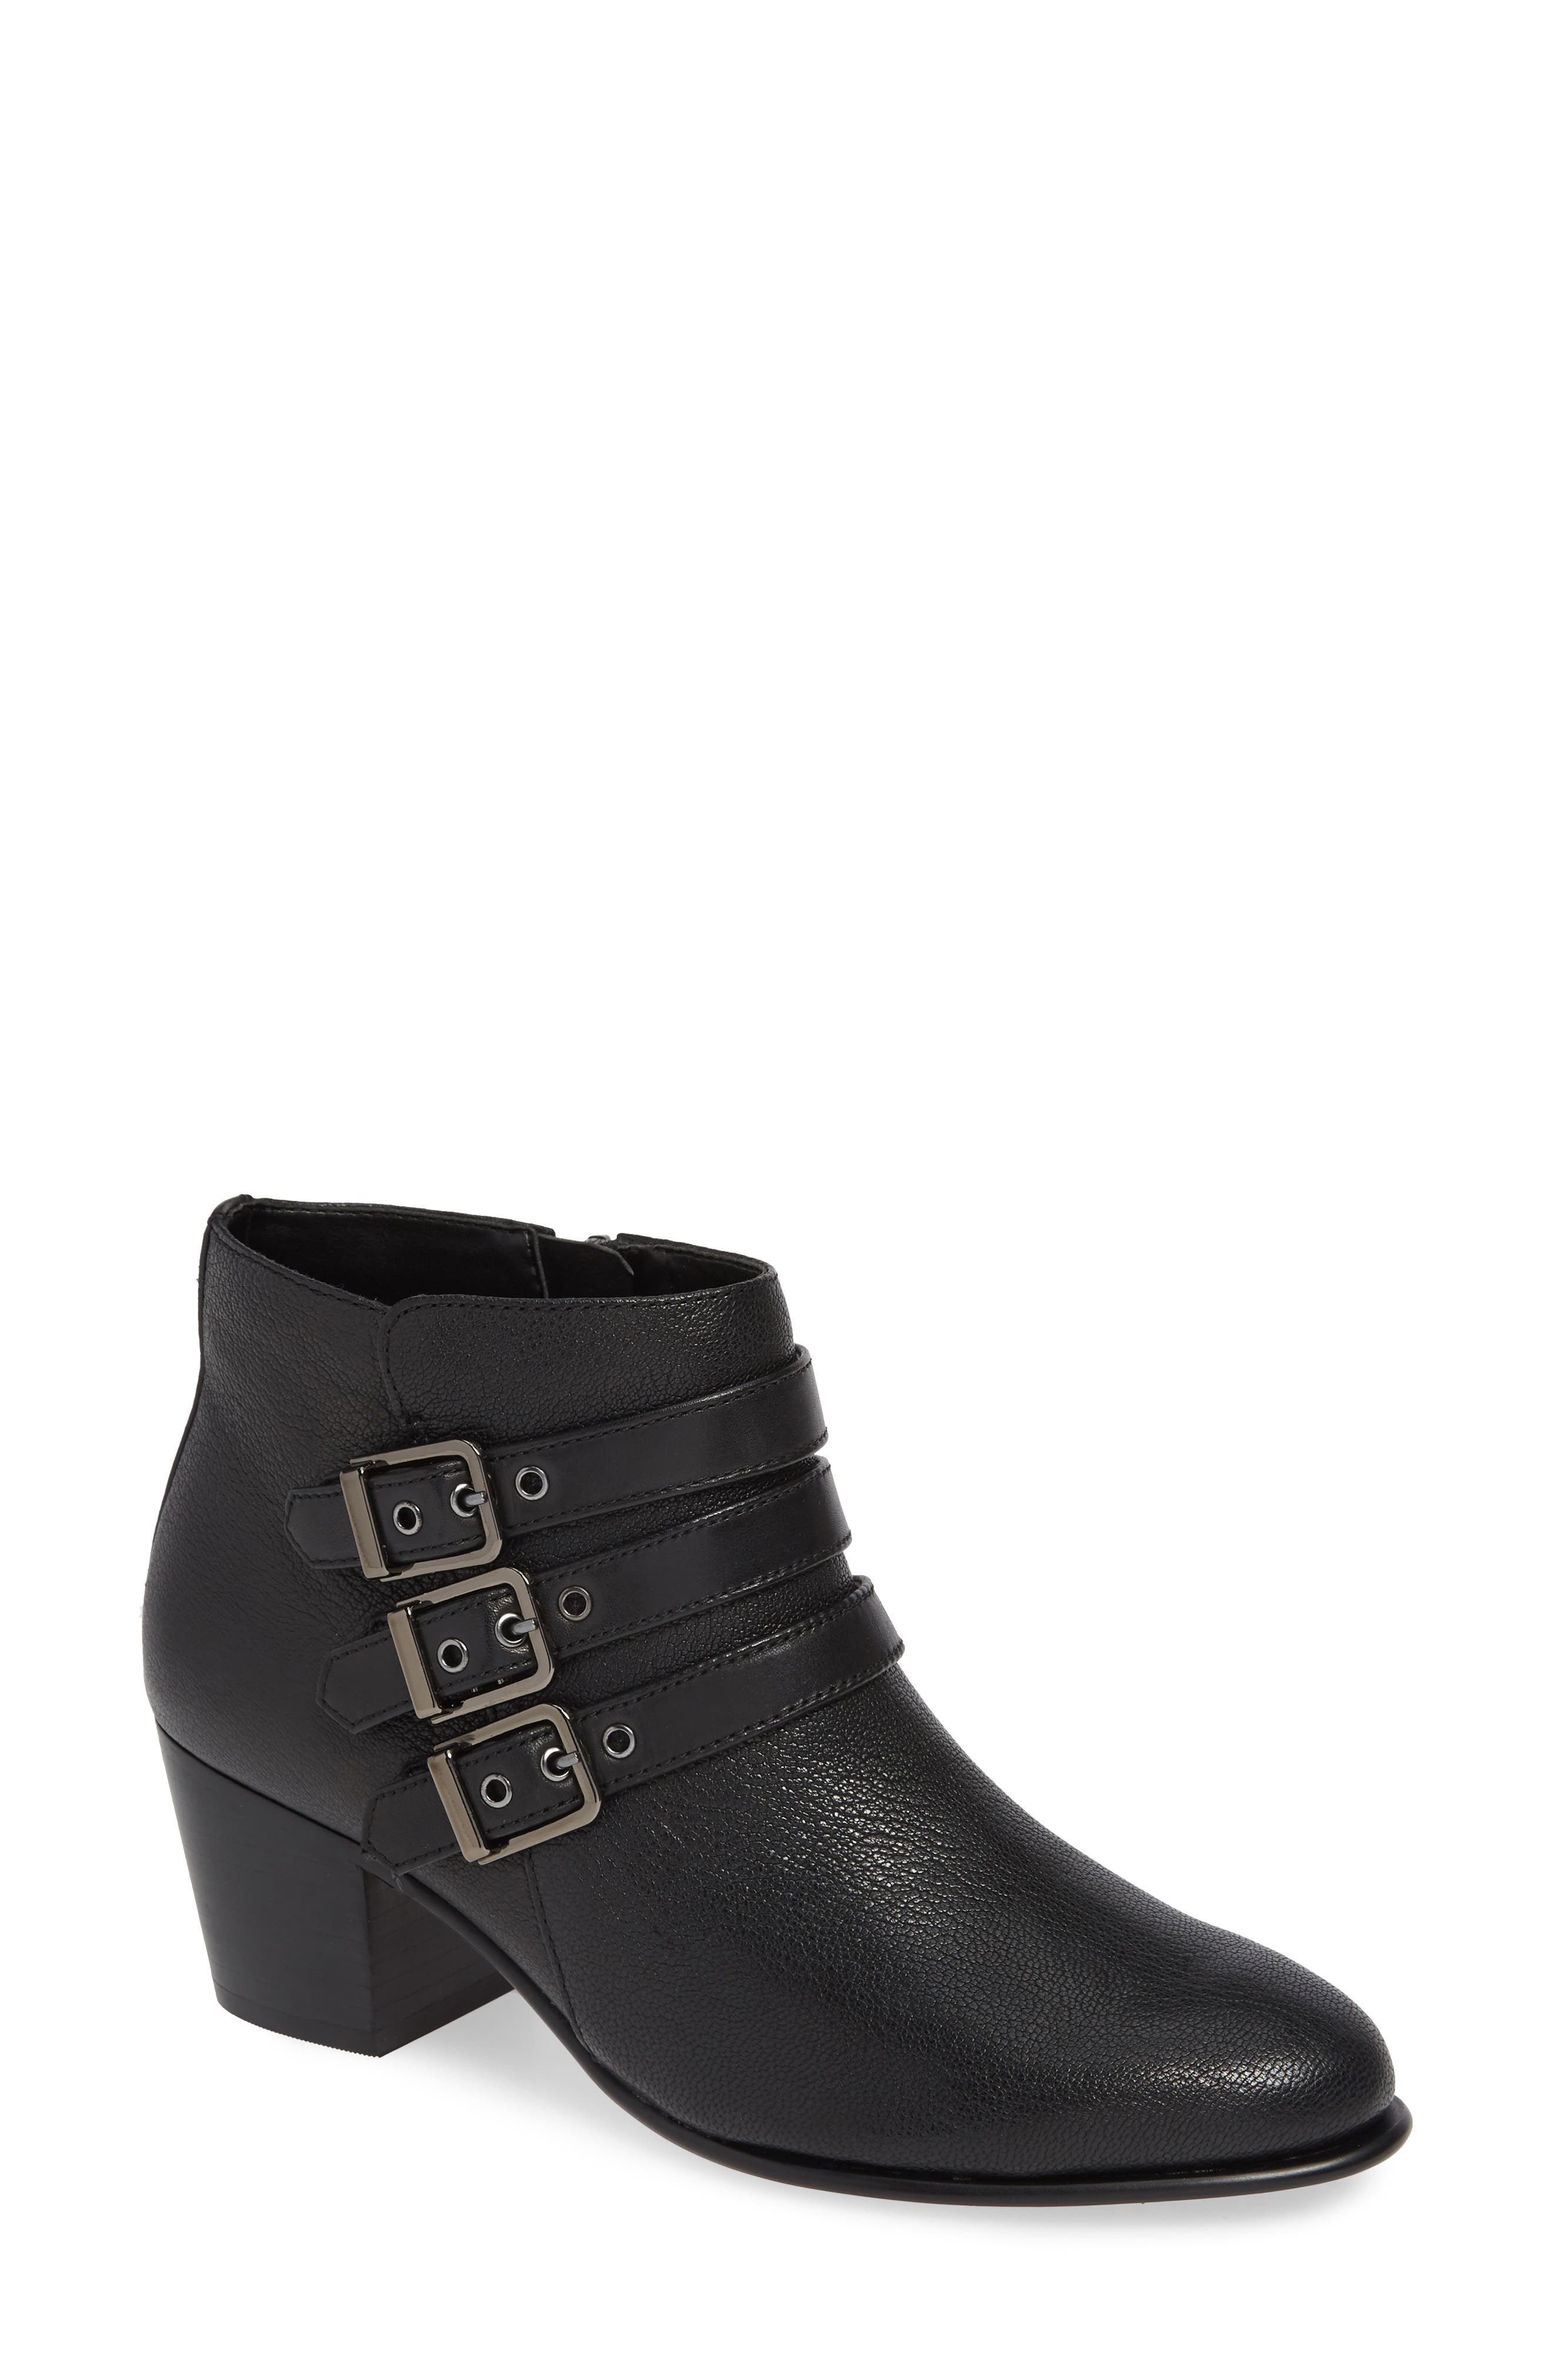 Maypearl Rayna Boot,                             Main thumbnail 1, color,                             BLACK TUMBLED LEATHER